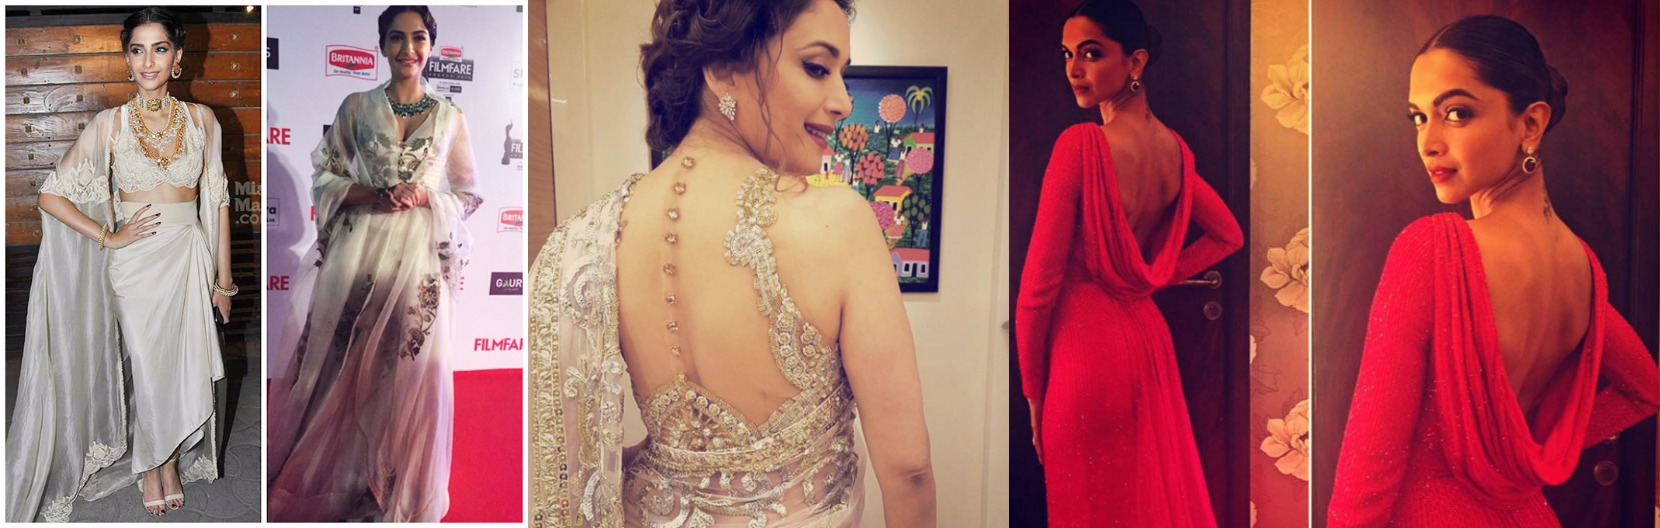 #Filmfare 2016: Sizzling Senoritas Who Graced The Red Carpet With Oomph!